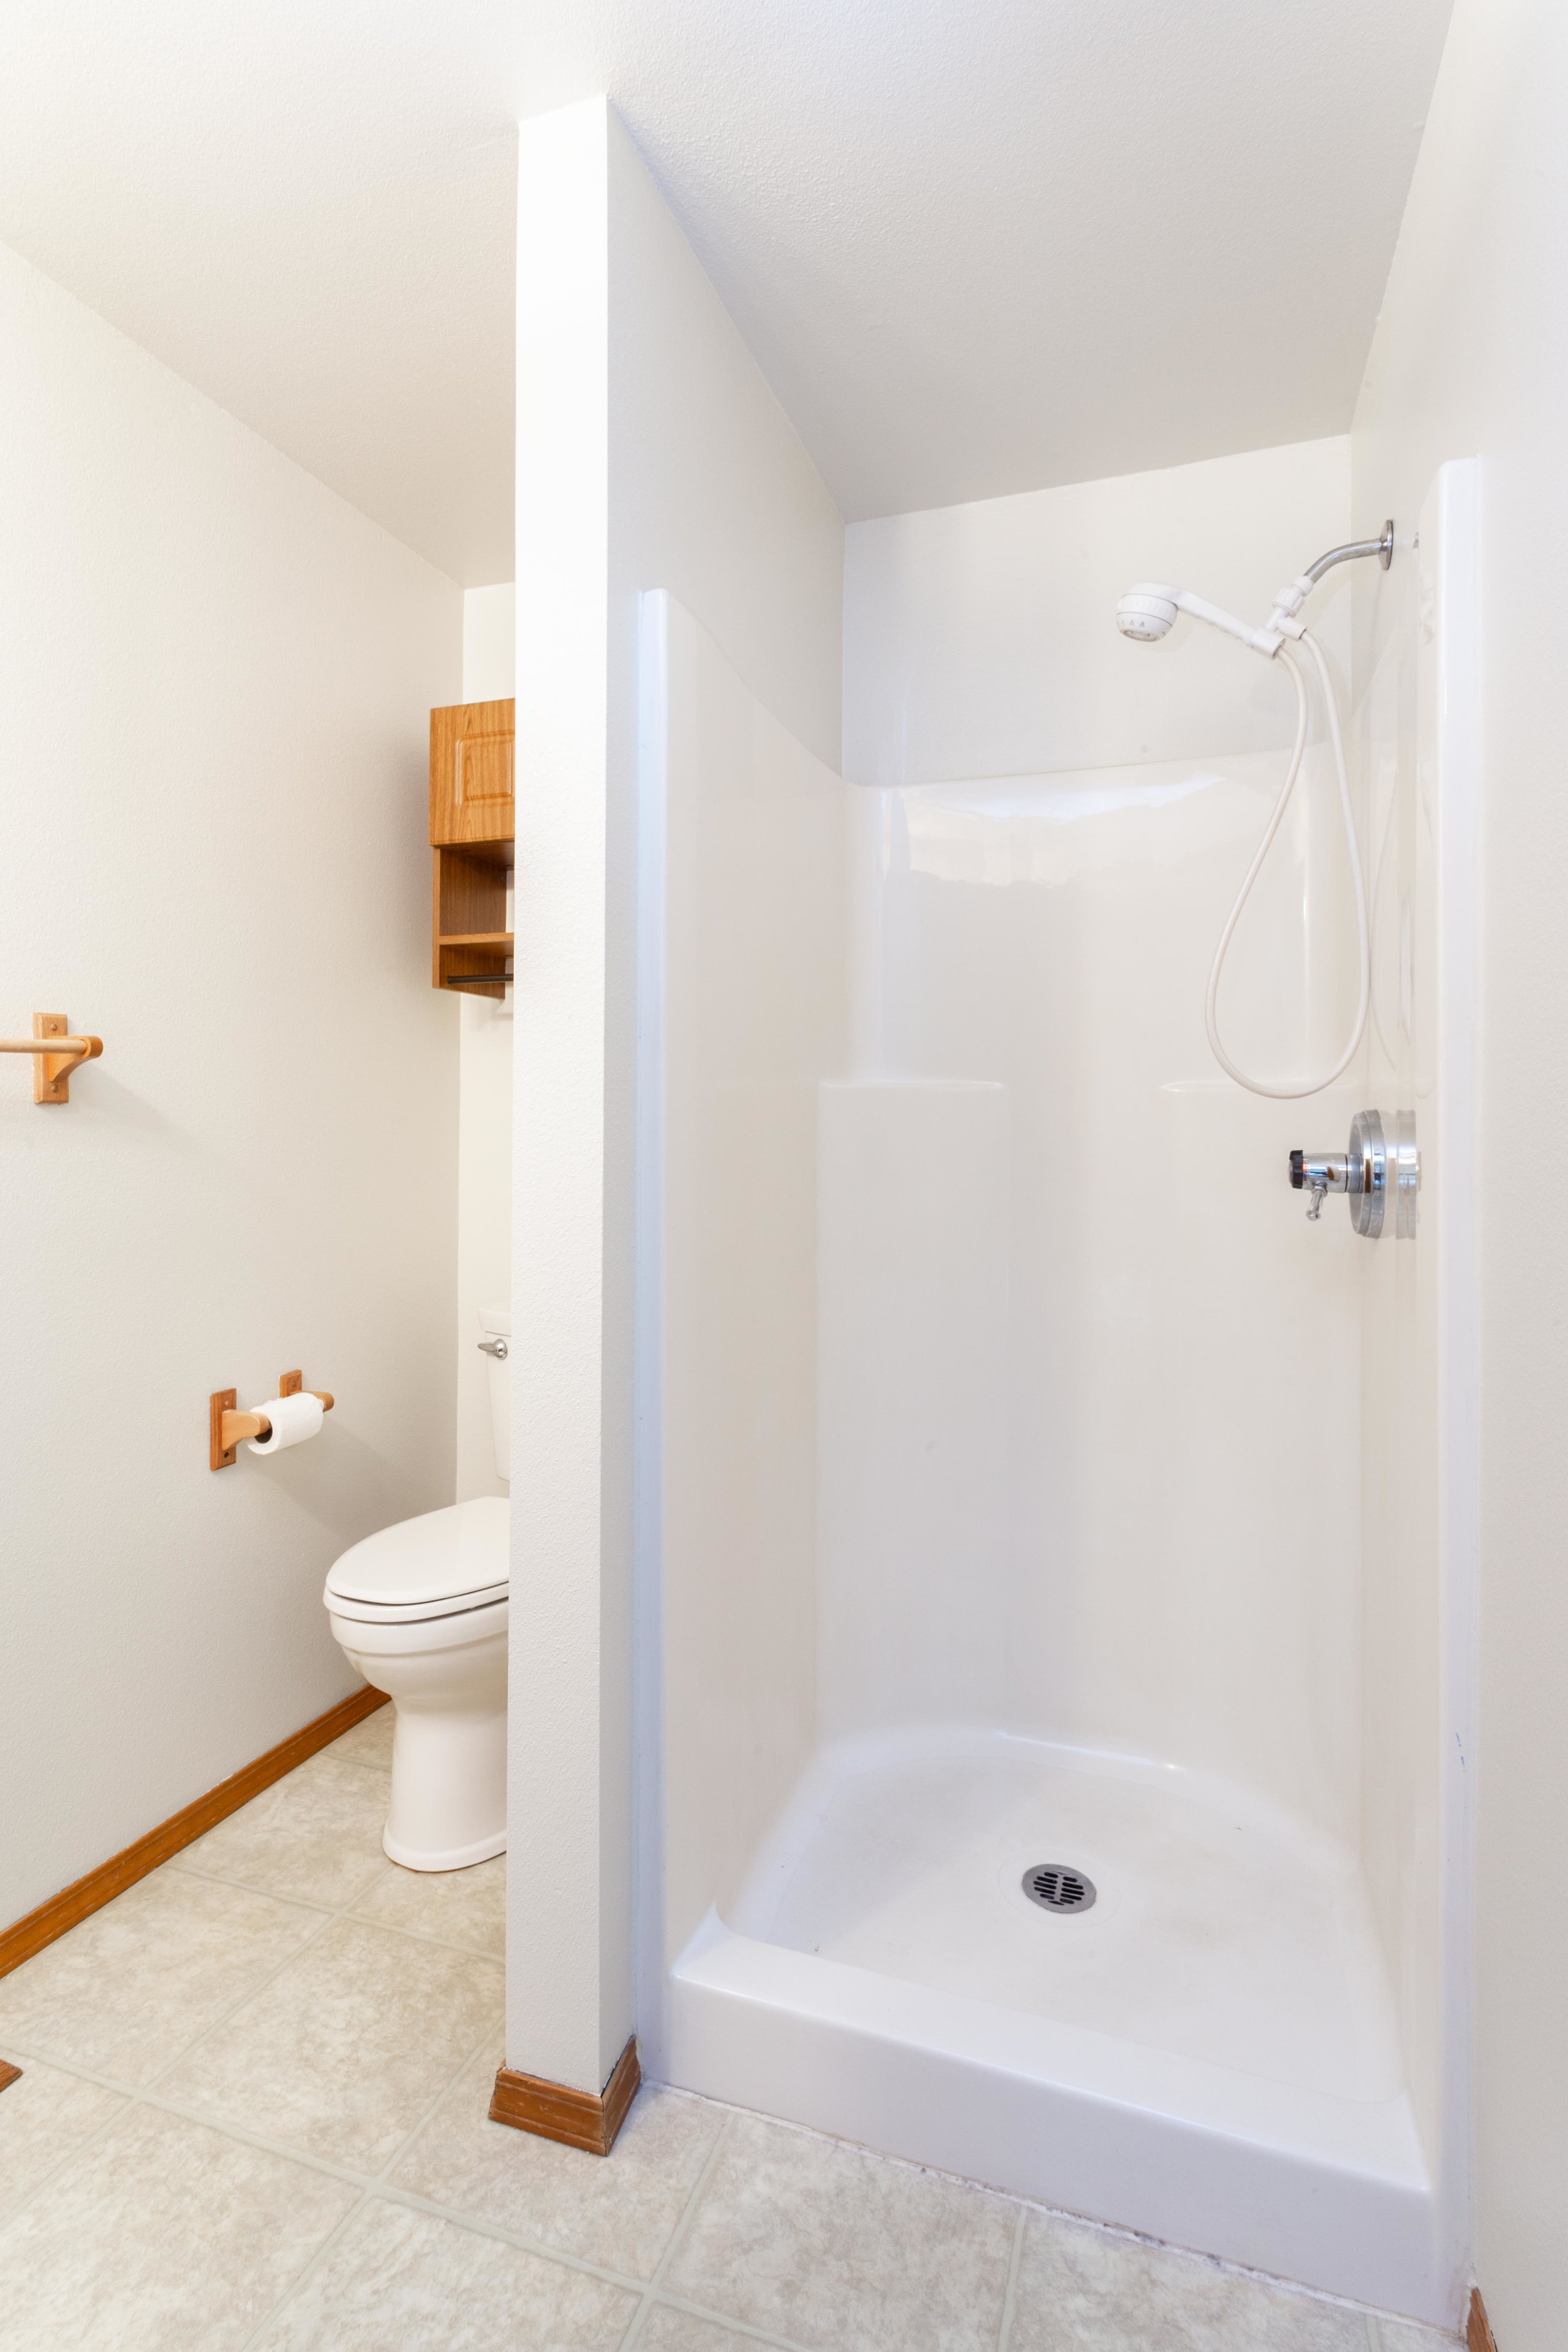 …and an extra full bath downstairs, too!